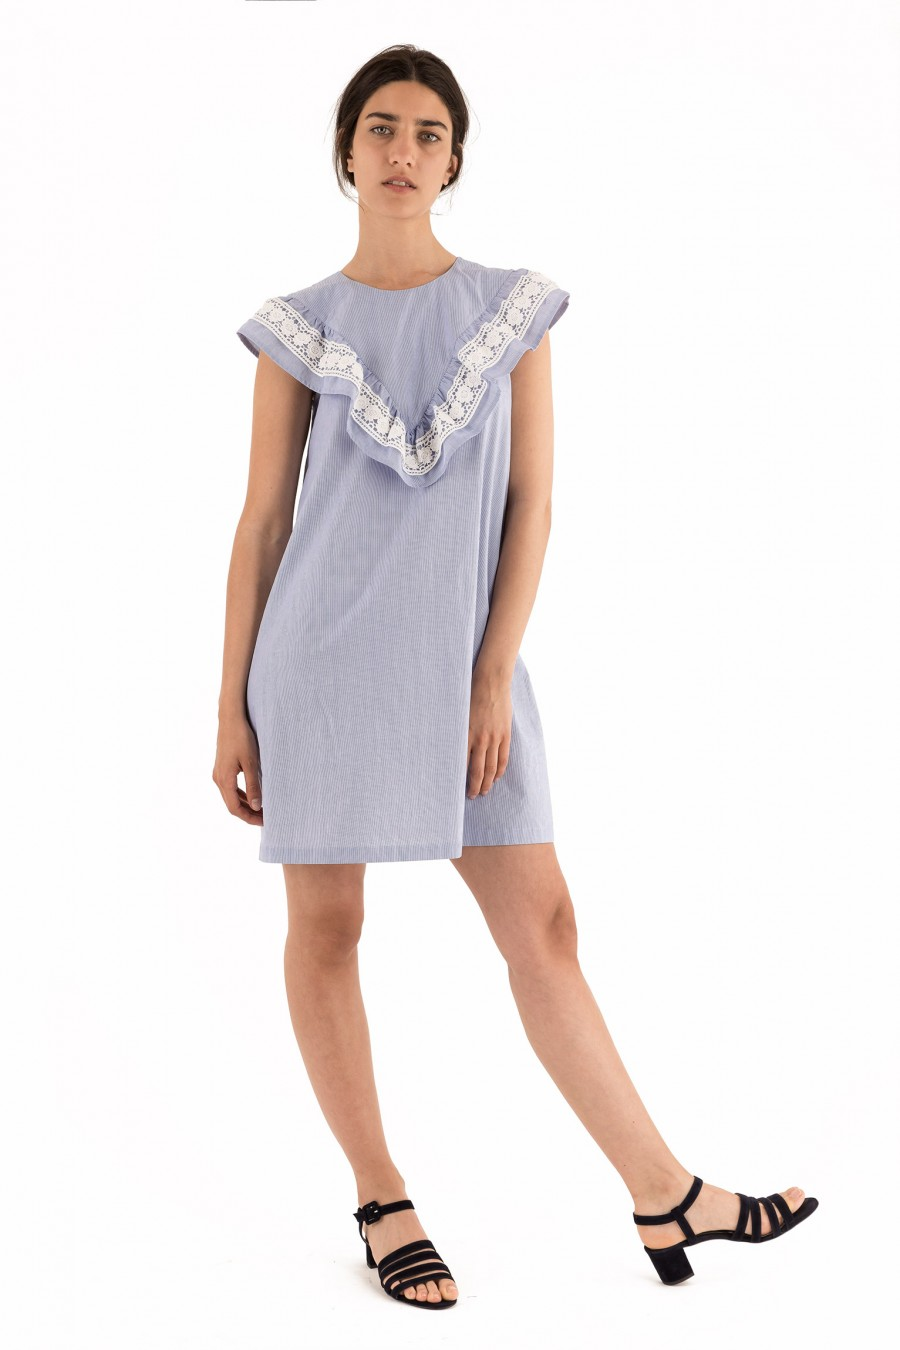 A-line cotton dress with lace